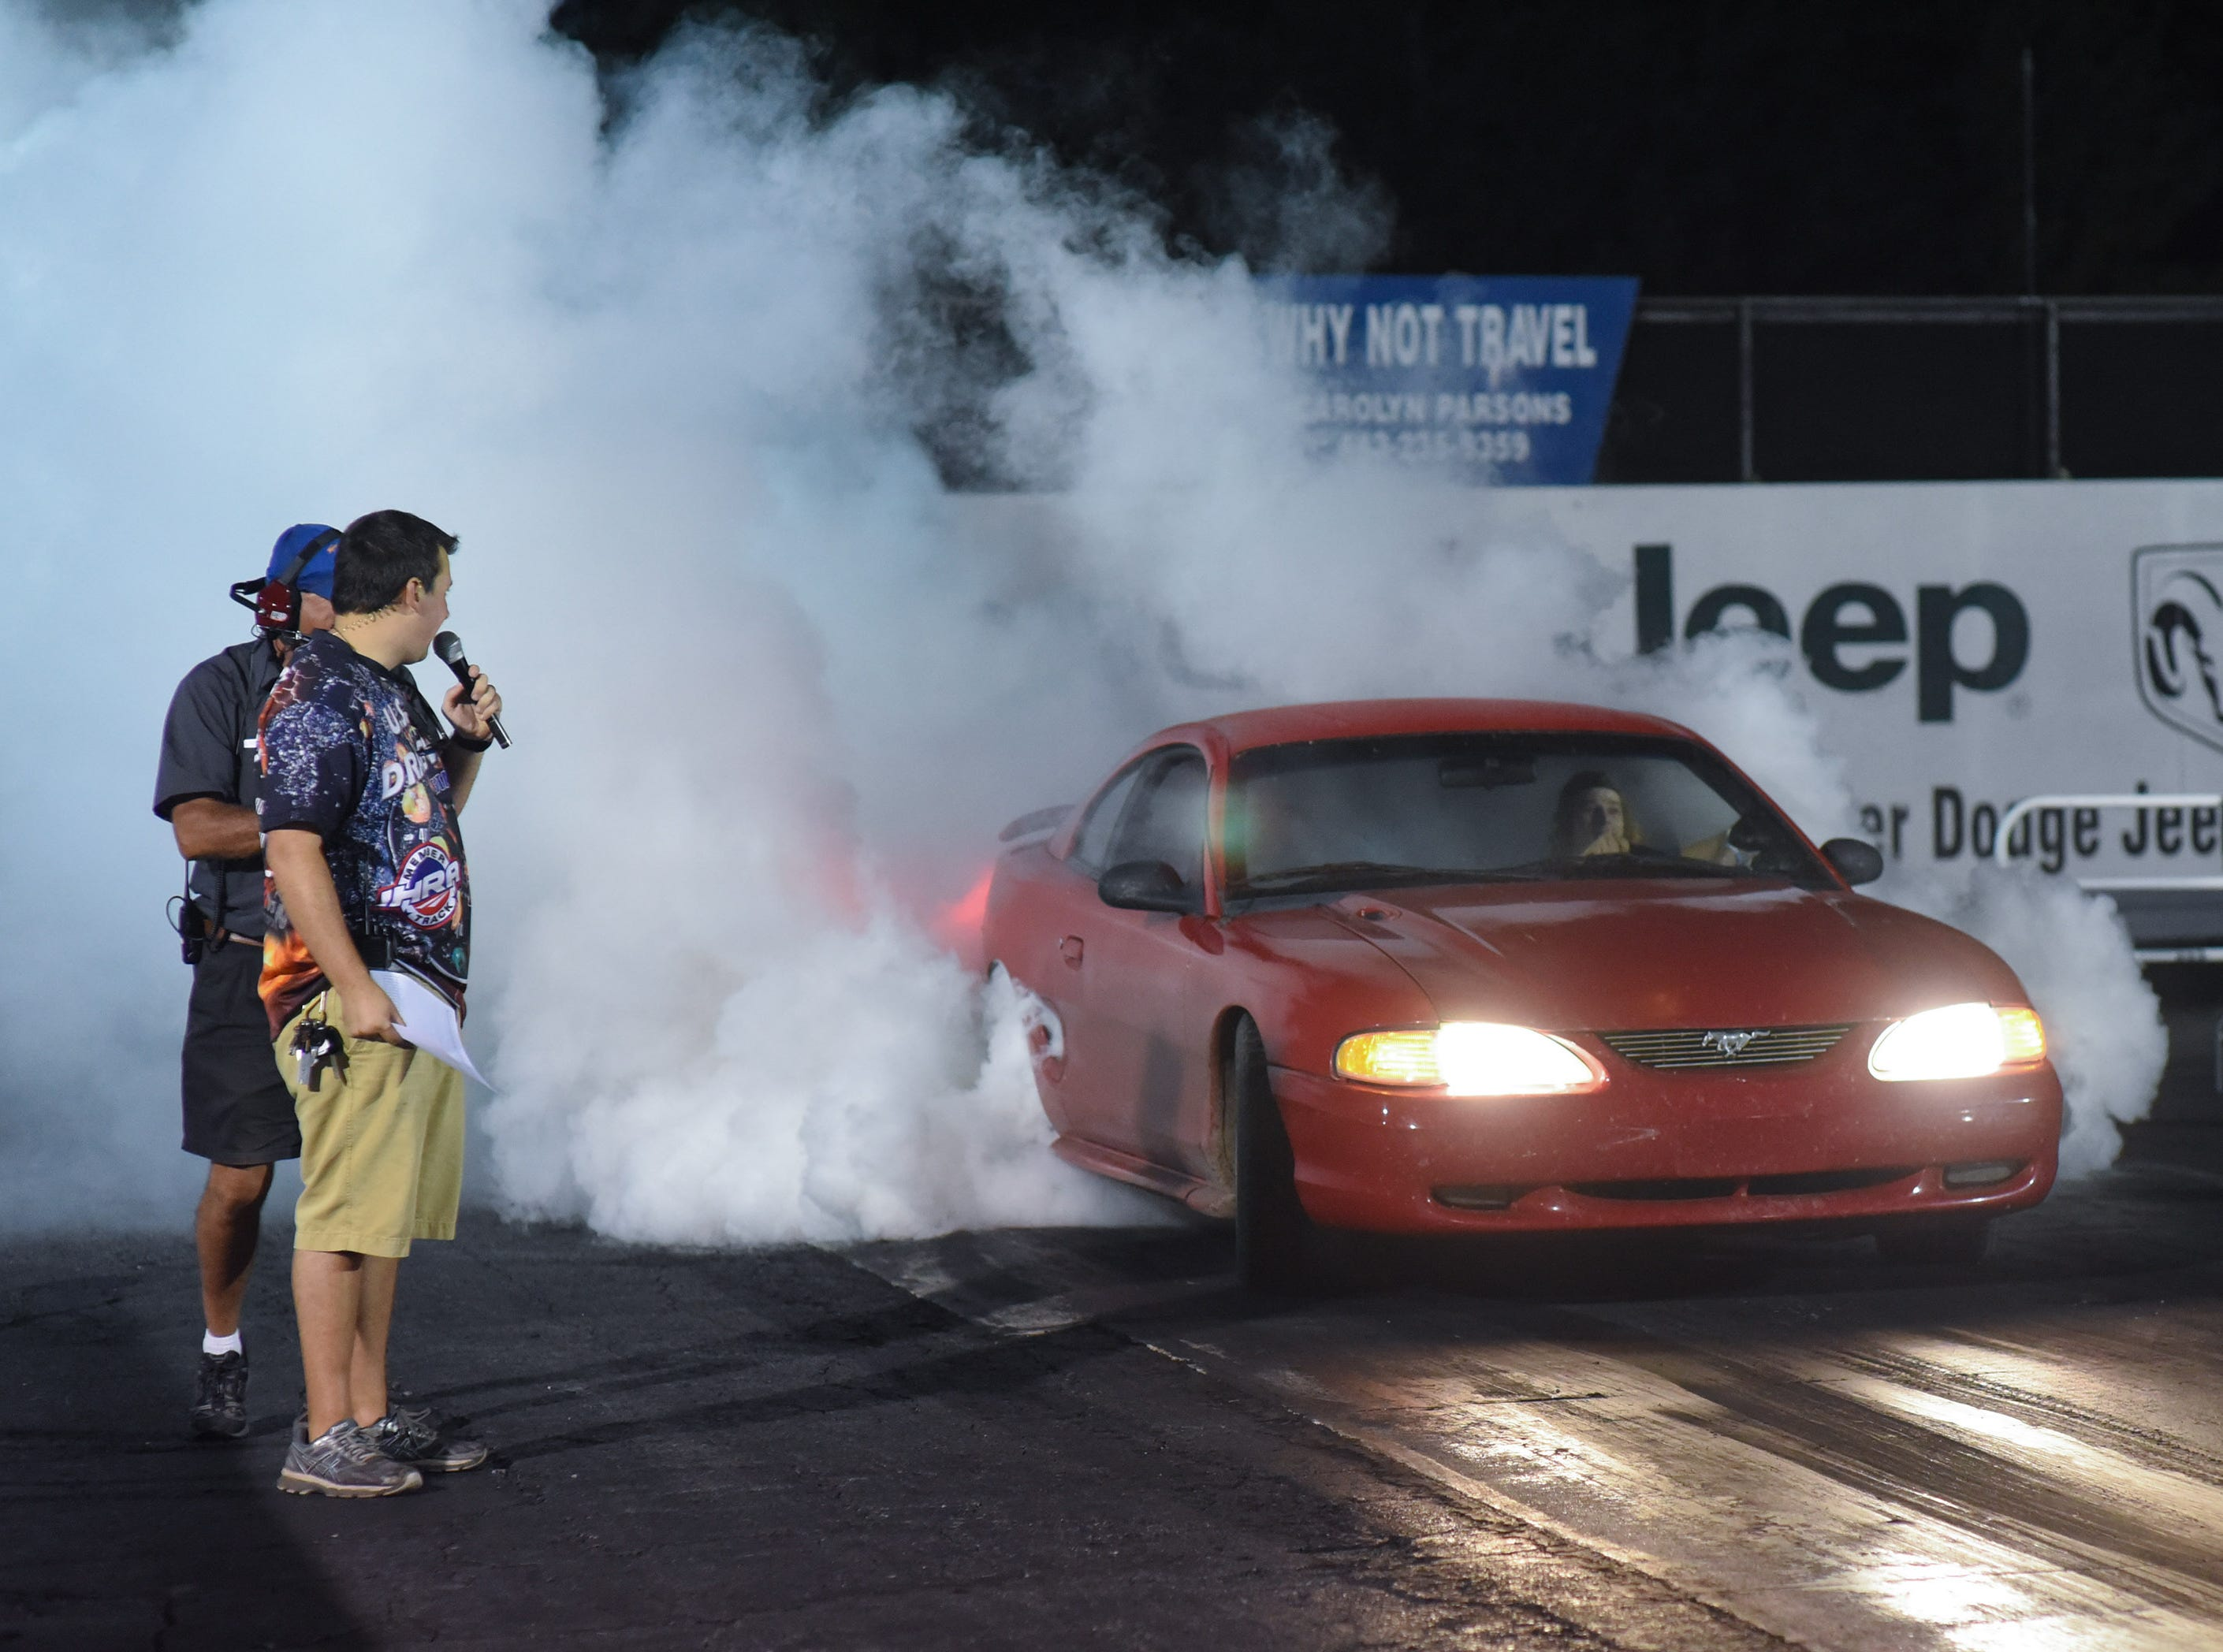 A competitor vies in the first Endless Summer Cruisin' 2018 Burnout Contest at the U.S. 13 Dragway in Delmar. Billy McLamb of Mardela Springs was the winner of the contest and $500 sponsored by Special Event Productions Inc. (Photo by Todd Dudek for The Daily Times)